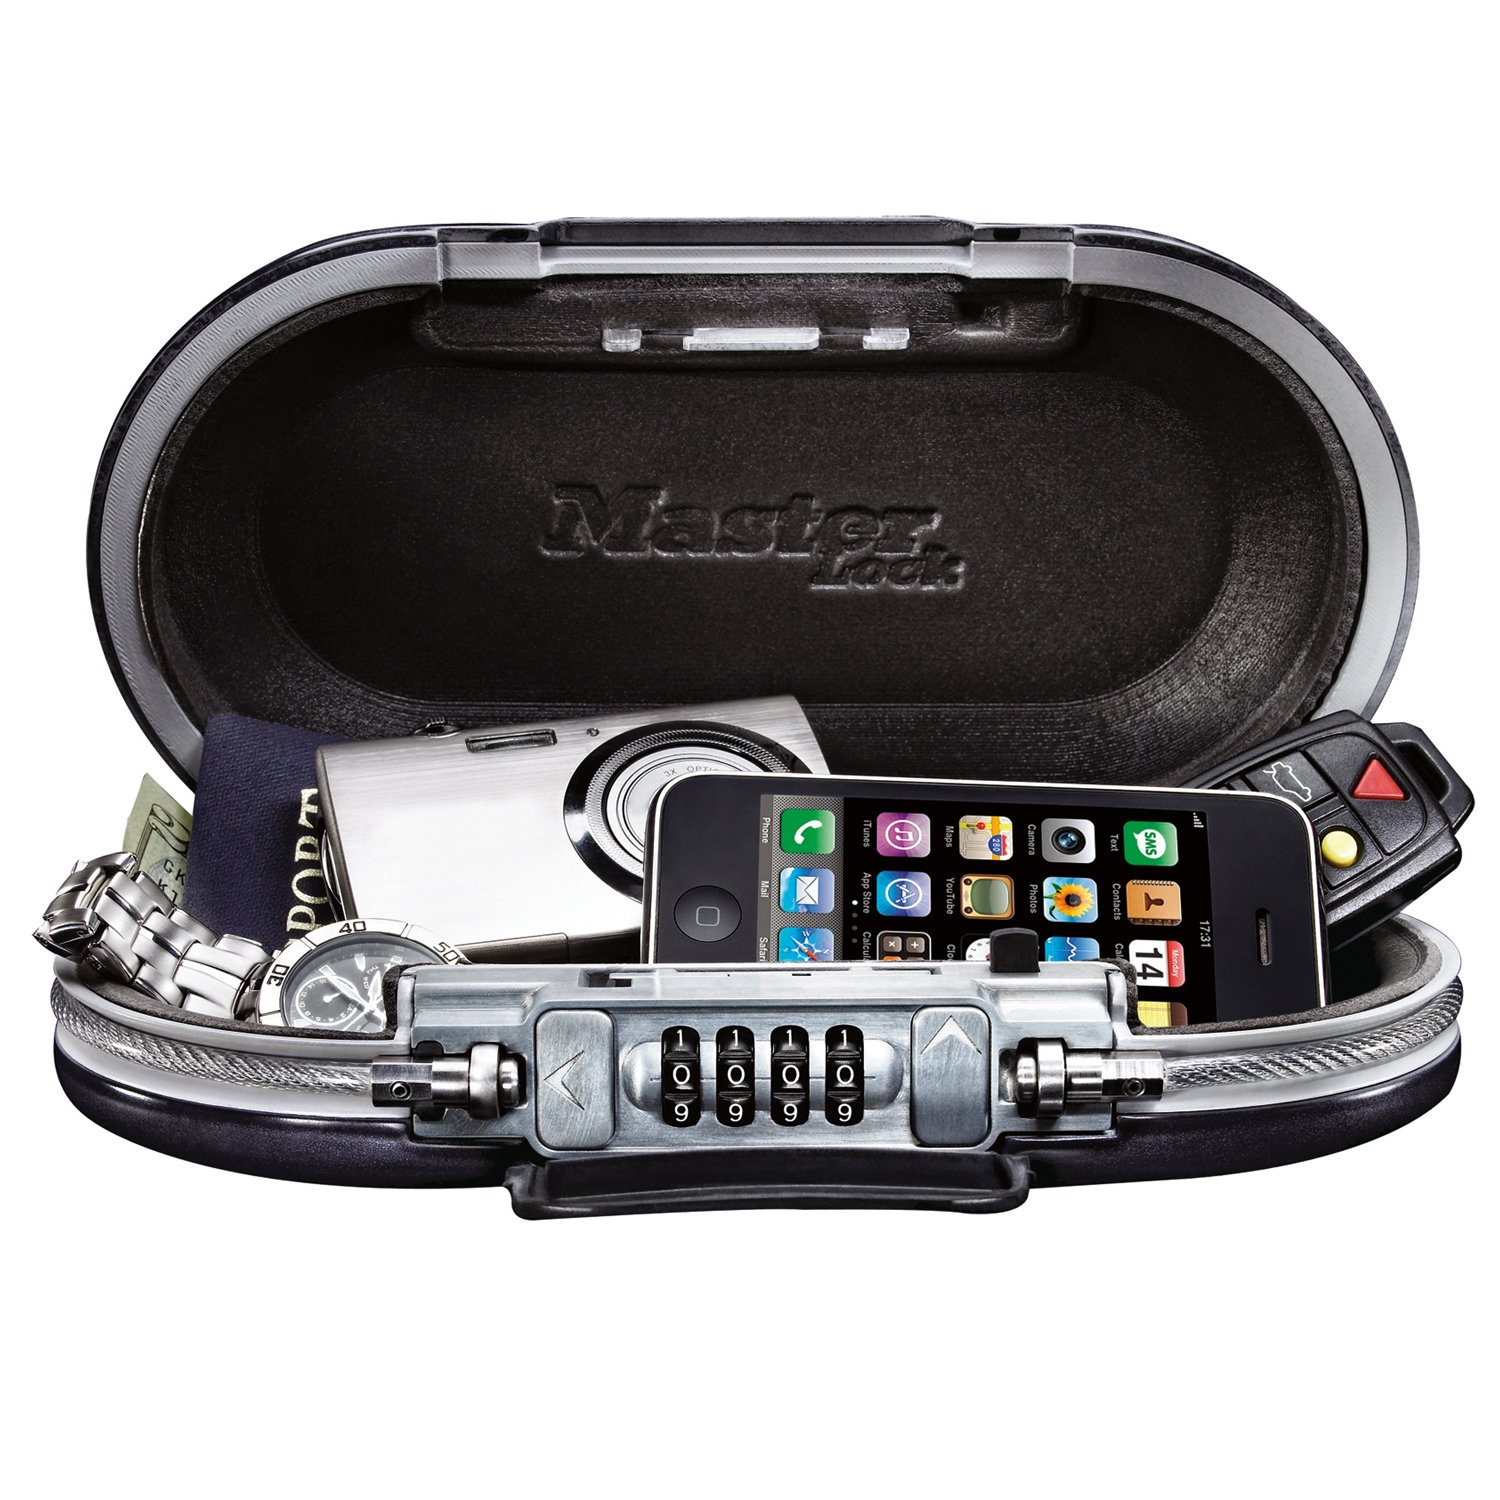 Master Lock 5900D Set Your Own Combination Portable Safe, 9-17/32 in. Wide, Gunmetal Grey by Master Lock